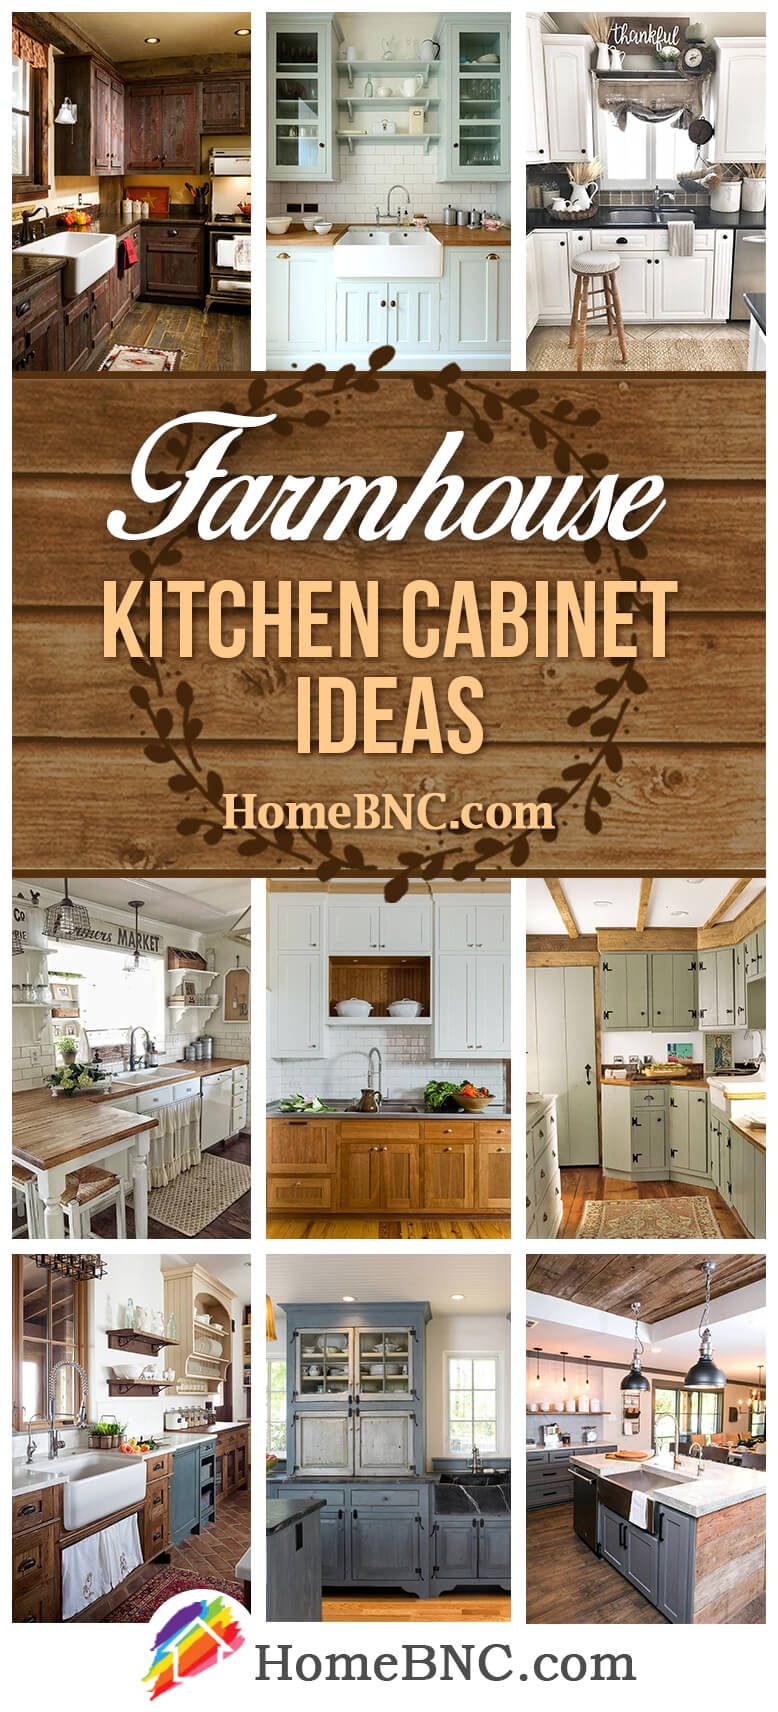 35 Great Farmhouse Kitchen Cabinets To Give Your Home Those French Country  Vibes